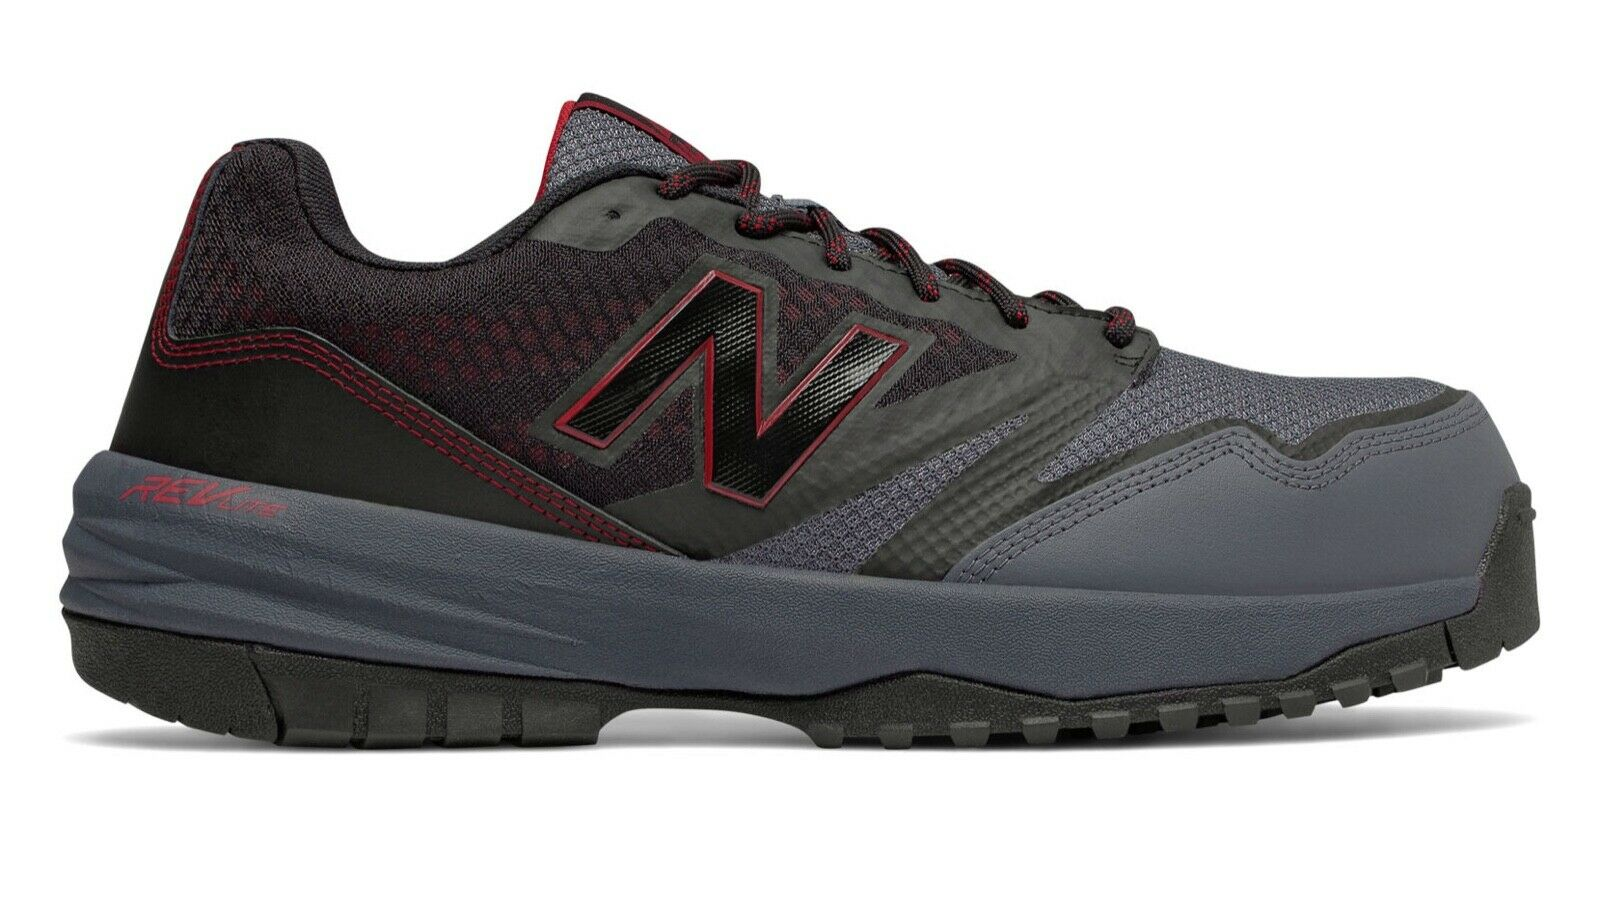 New Balance shoes Composite Toe 589 Safety Athletic Work MID589O1 Athletic EH